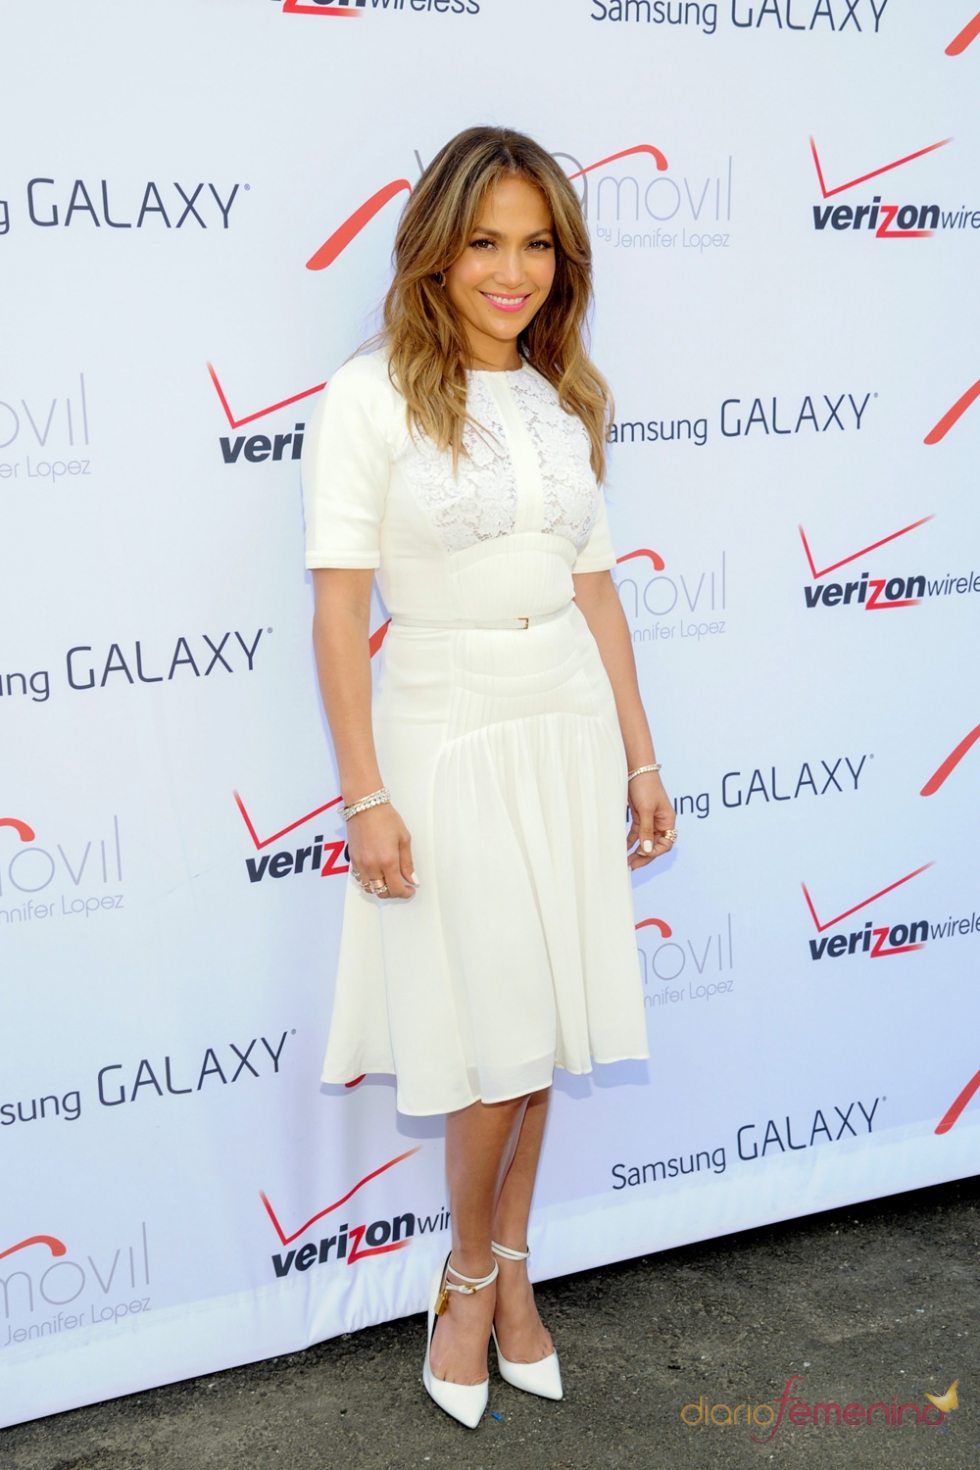 Video del vestido blanco de jennifer lopez